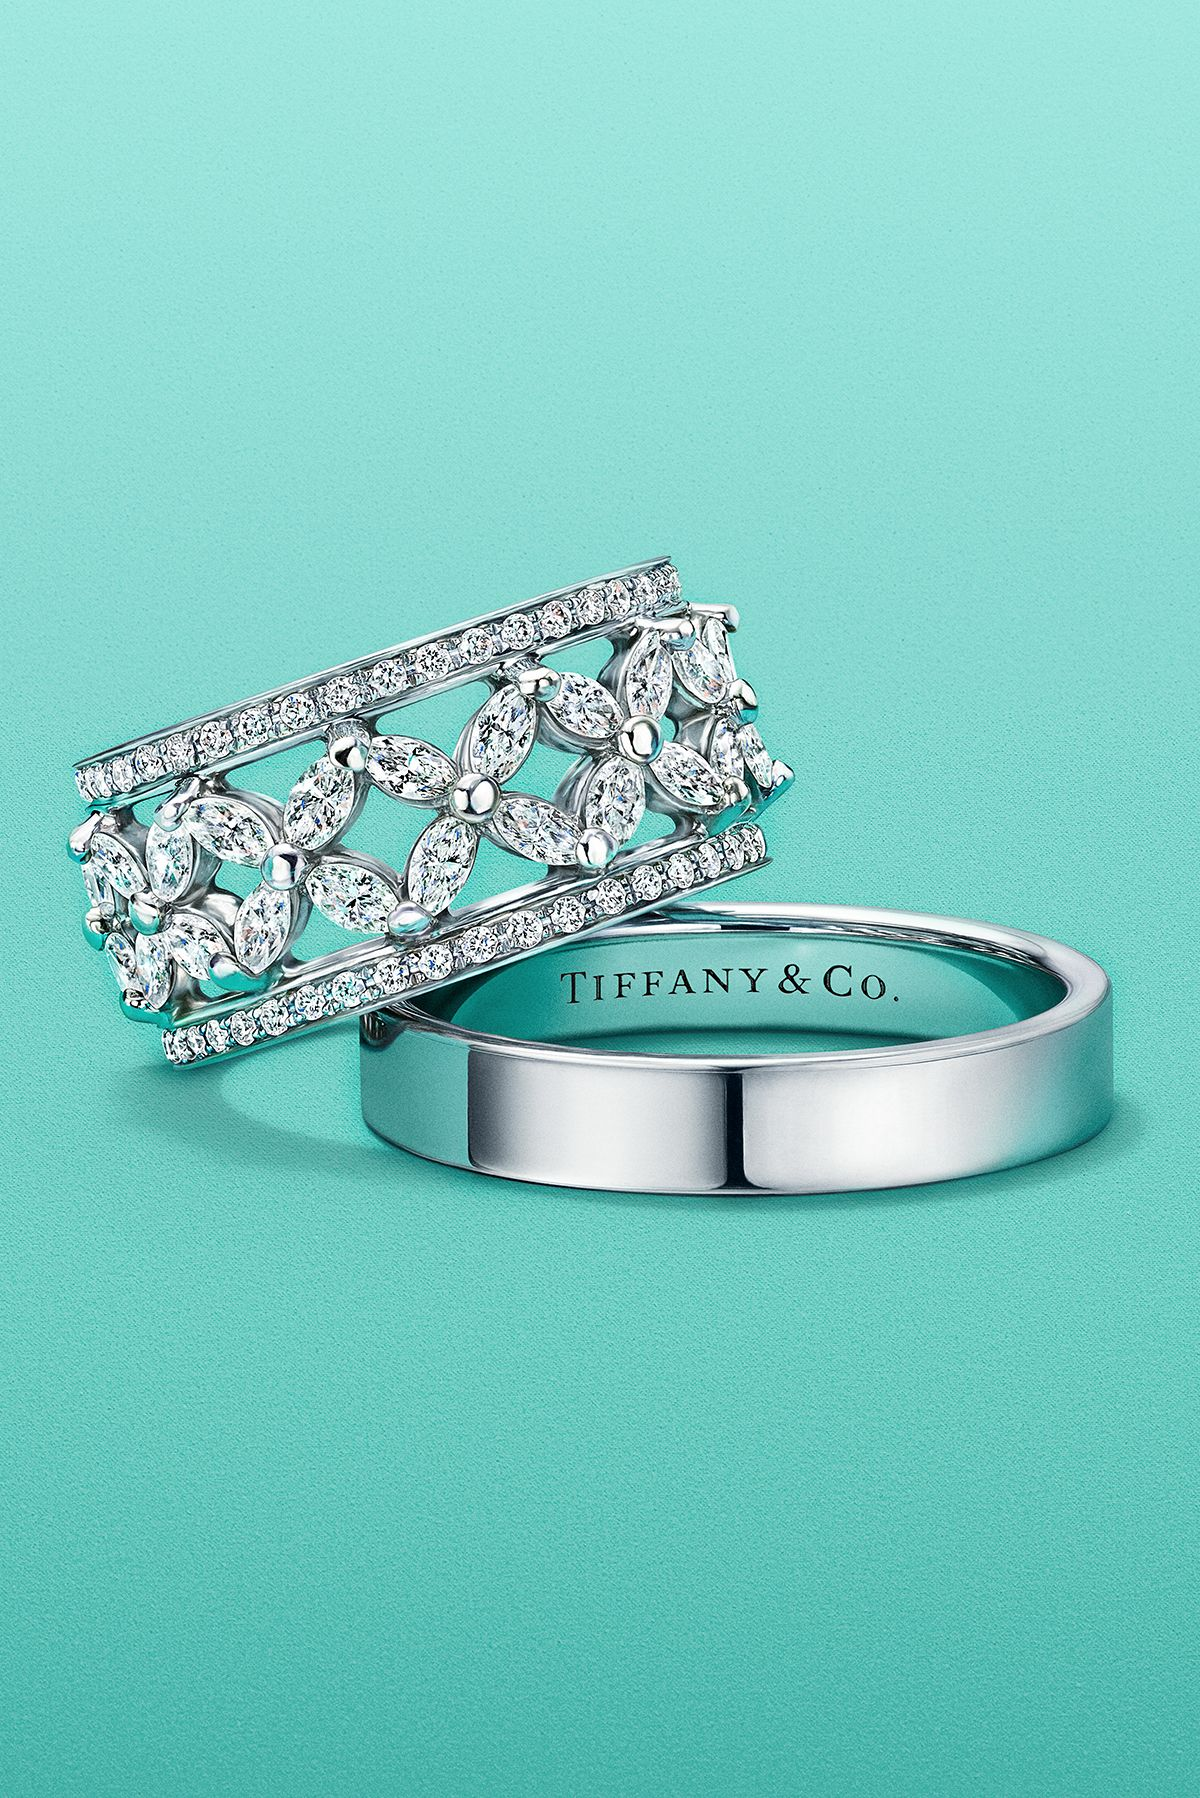 Tiffany Wedding Bands Tiffany Engagement Ring Tiffany Engagement Sapphire Diamond Engagement